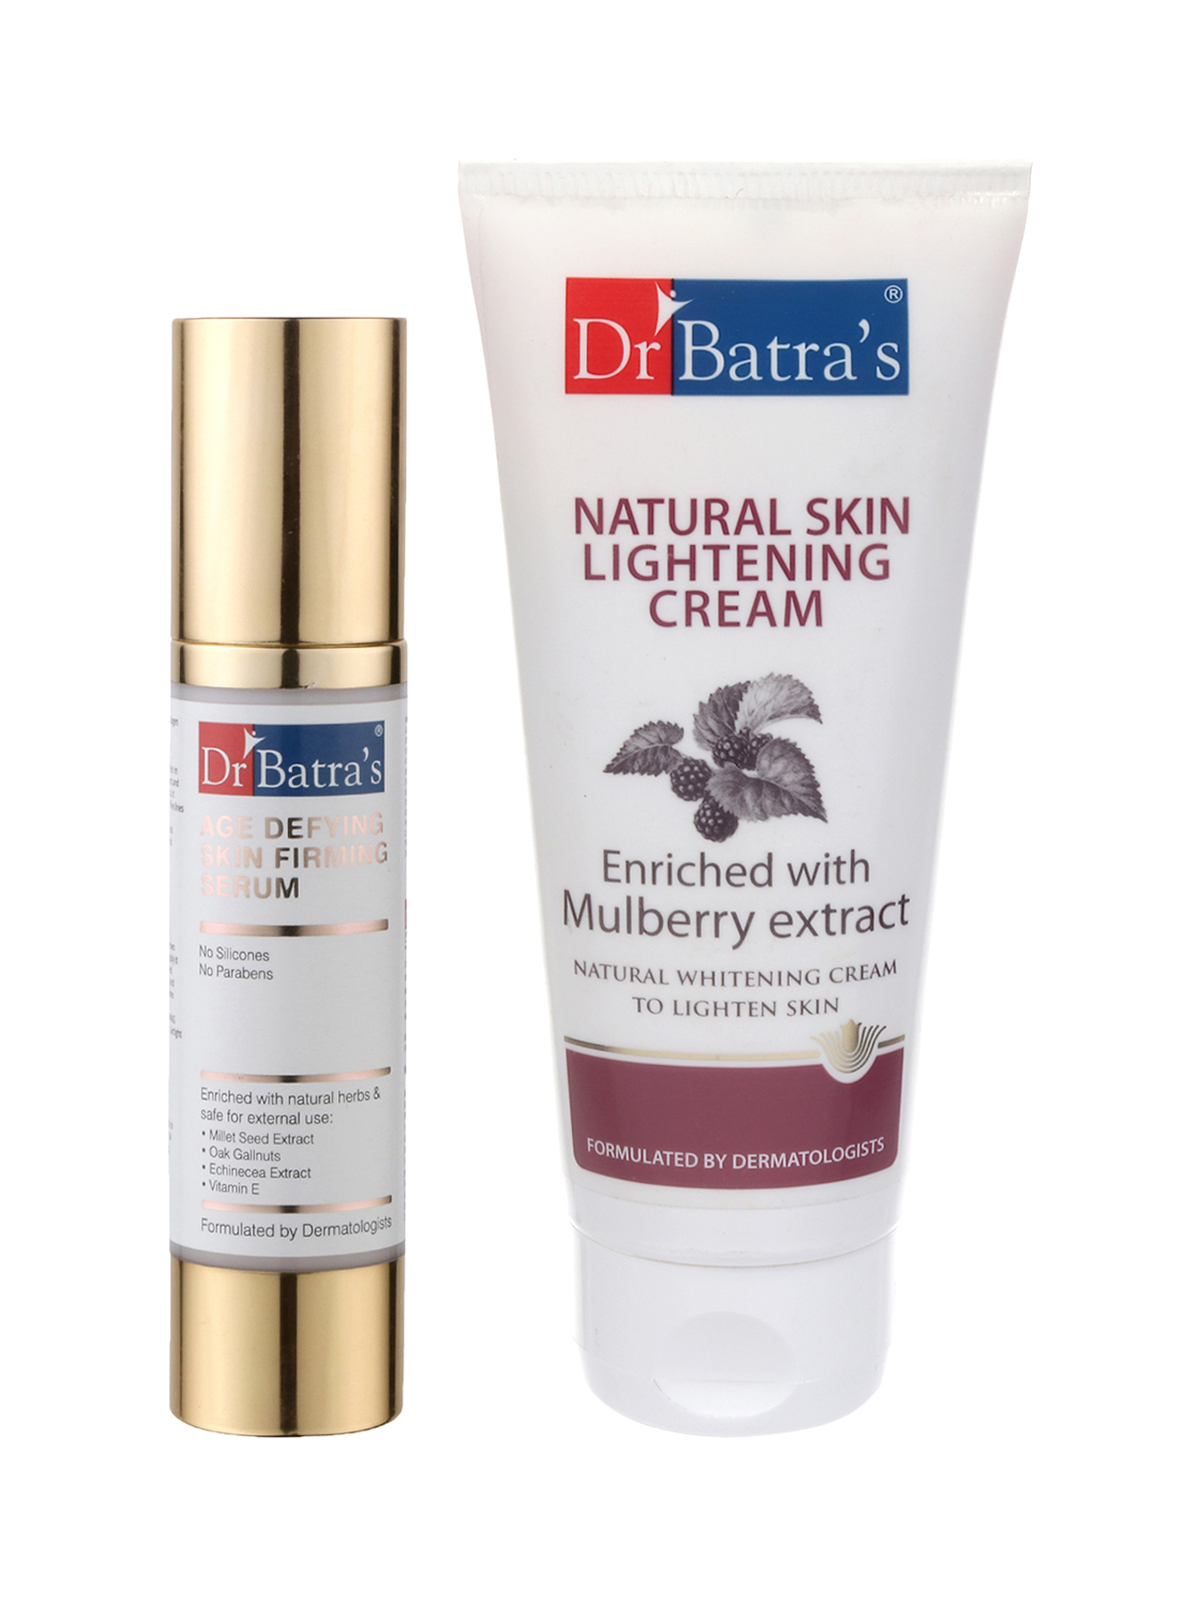 Dr Batra's | Dr Batra's Age defying Skin firming Serum - 50 g and Natural Skin Lightening Cream - 100 gm (Pack of 2 For Men and Women)